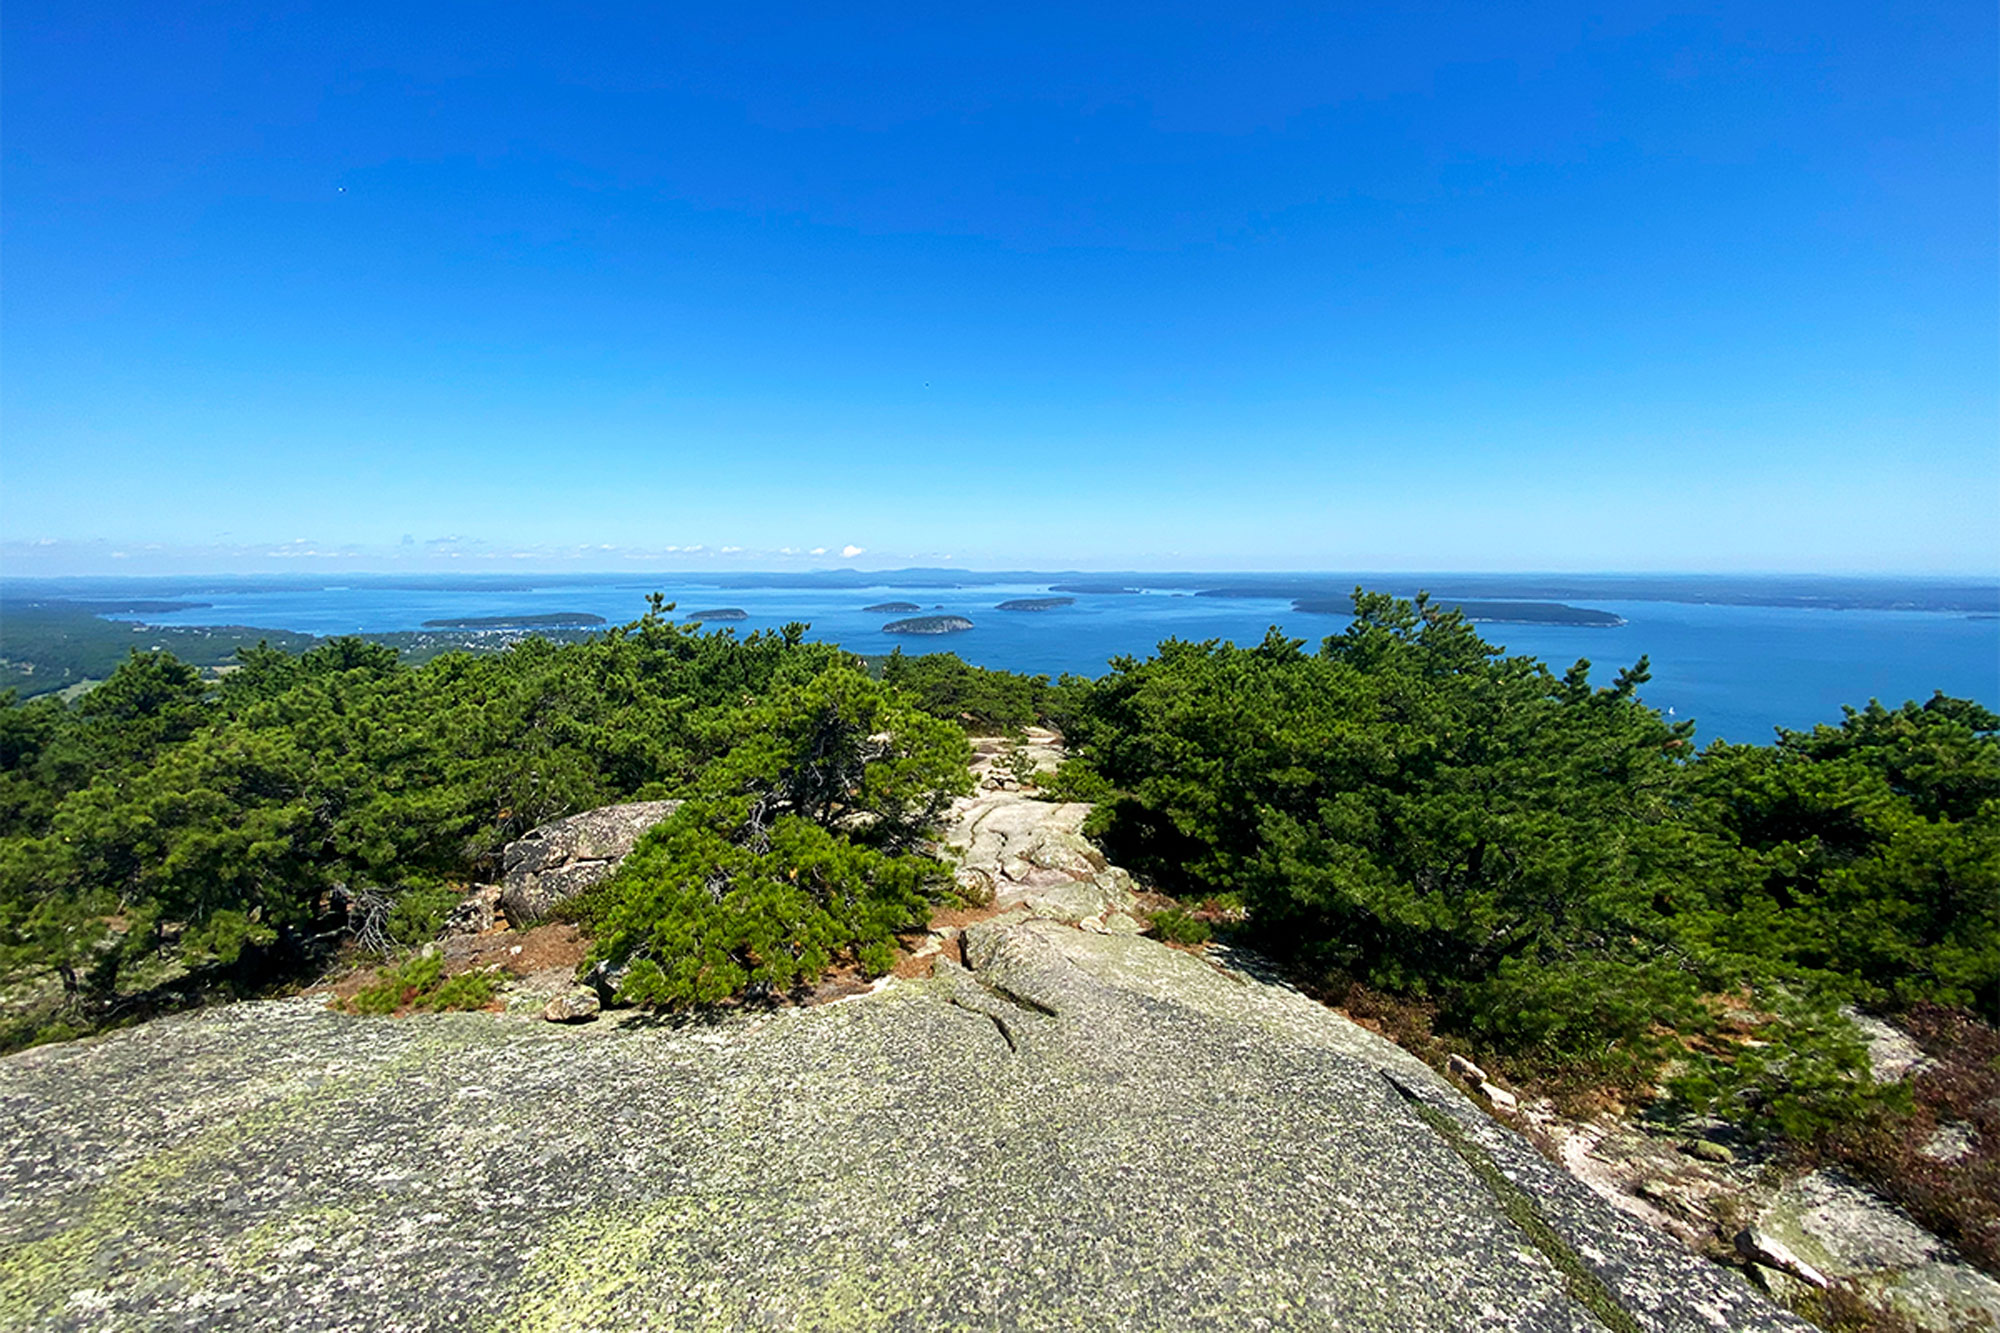 A view of Frenchman Bay and the Porcupine Islands while descending Champlain's North Ridge. | Credit: John Lepak